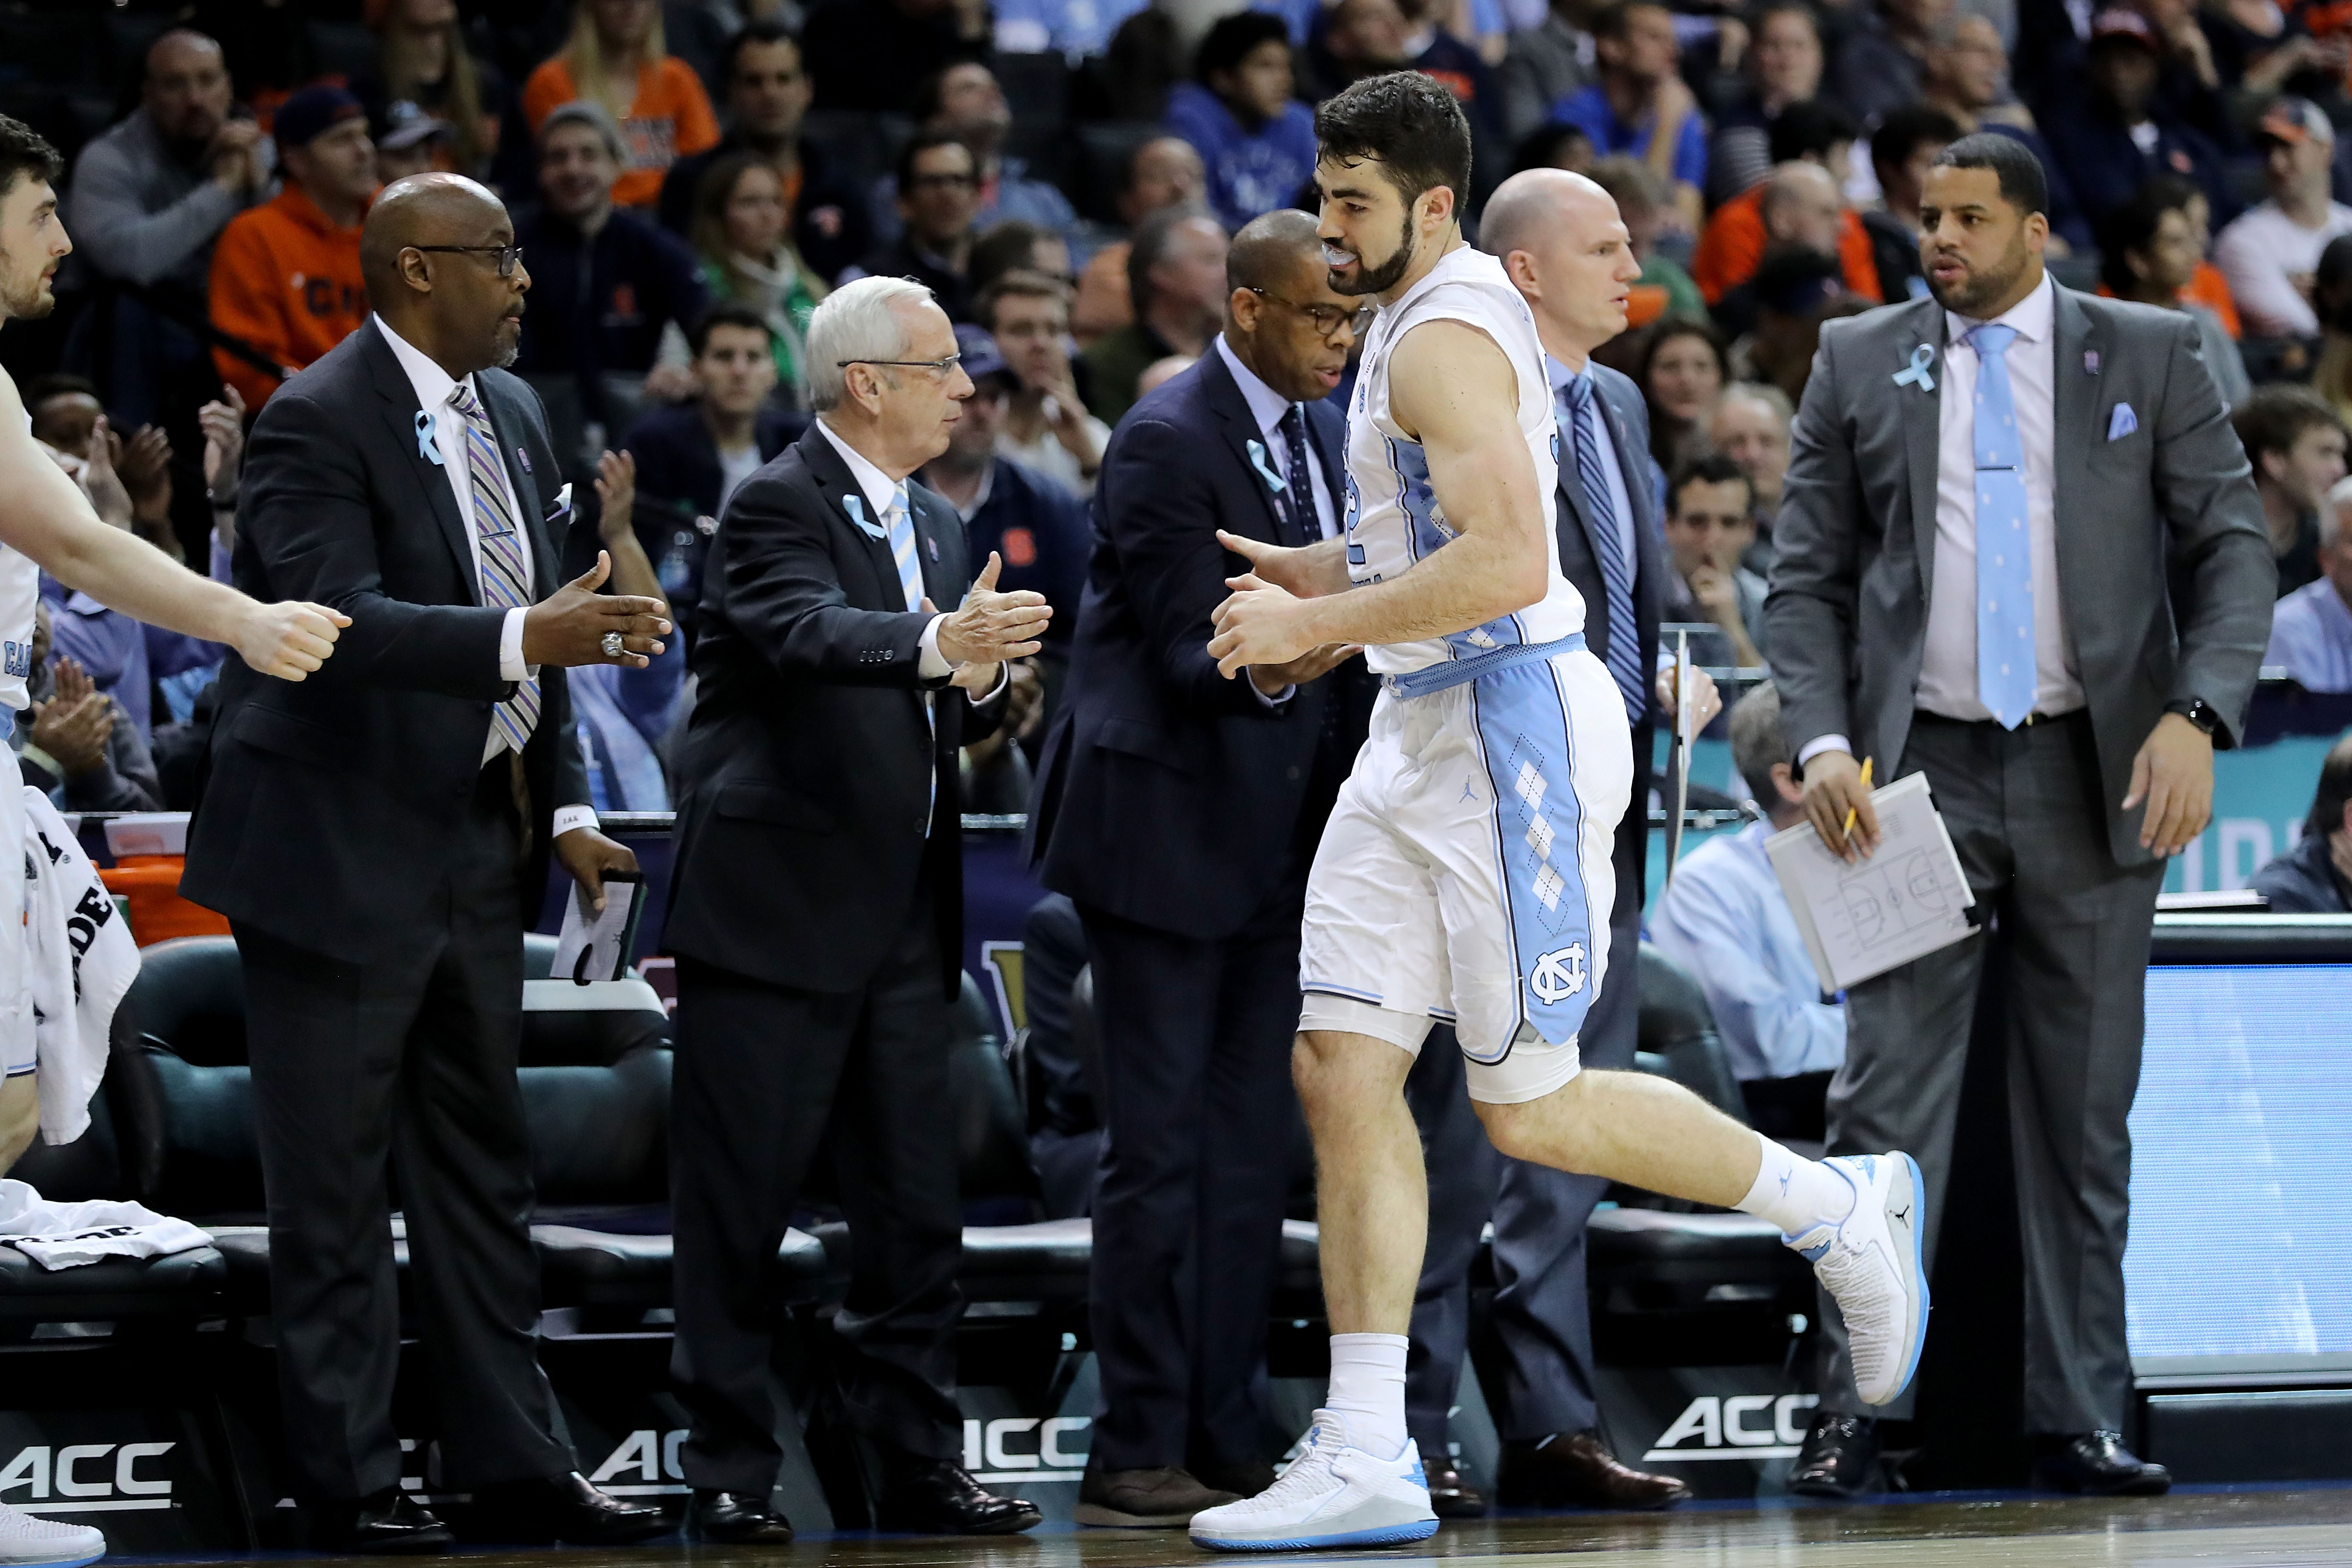 d77a8c28ca9f College basketball  Why North Carolina s gutsy non-conference schedule is  the toughest this year